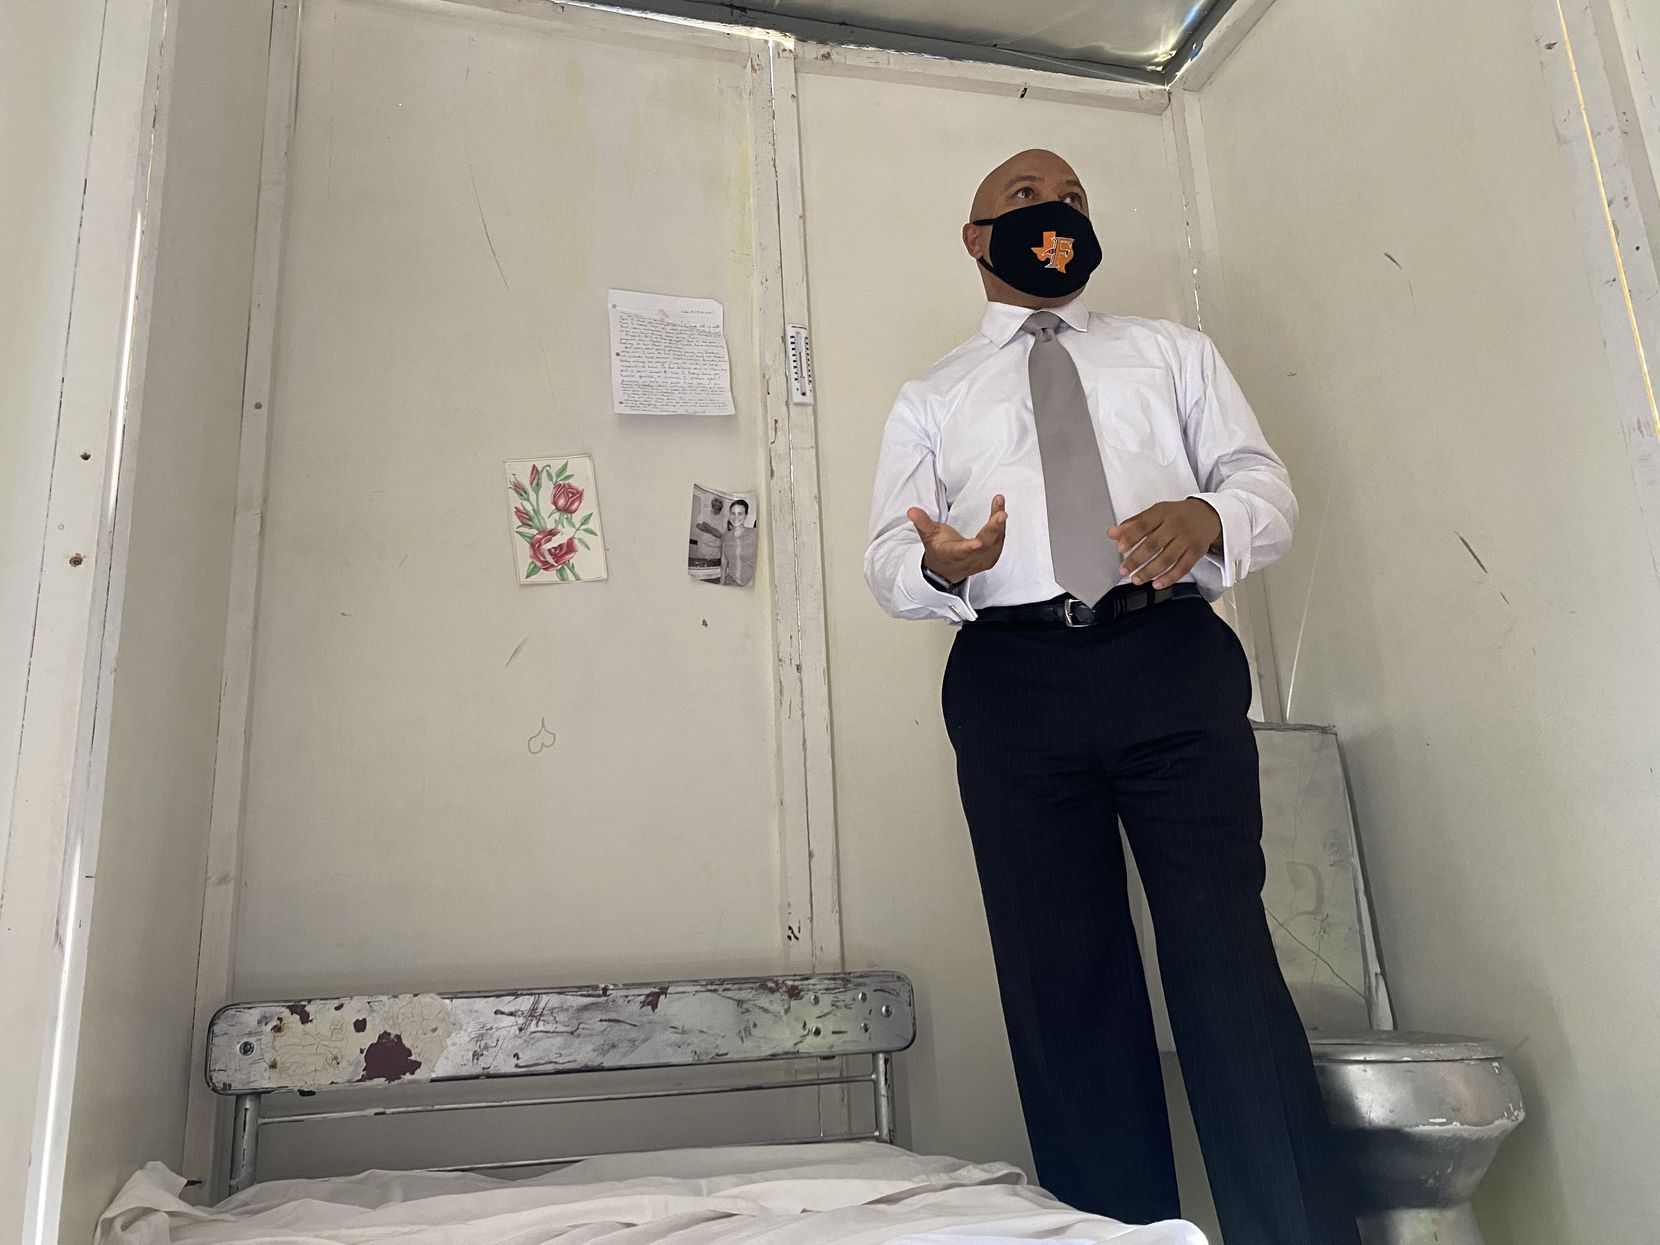 Rep. Carl O. Sherman, Sr., D-DeSoto, stands inside a mock cell the Texas Prison Air Conditioning Advocates set up in South Austin the week of April 19, 2021. The group invited lawmakers and the public to experience what it feels like to experience the heat behind bars.